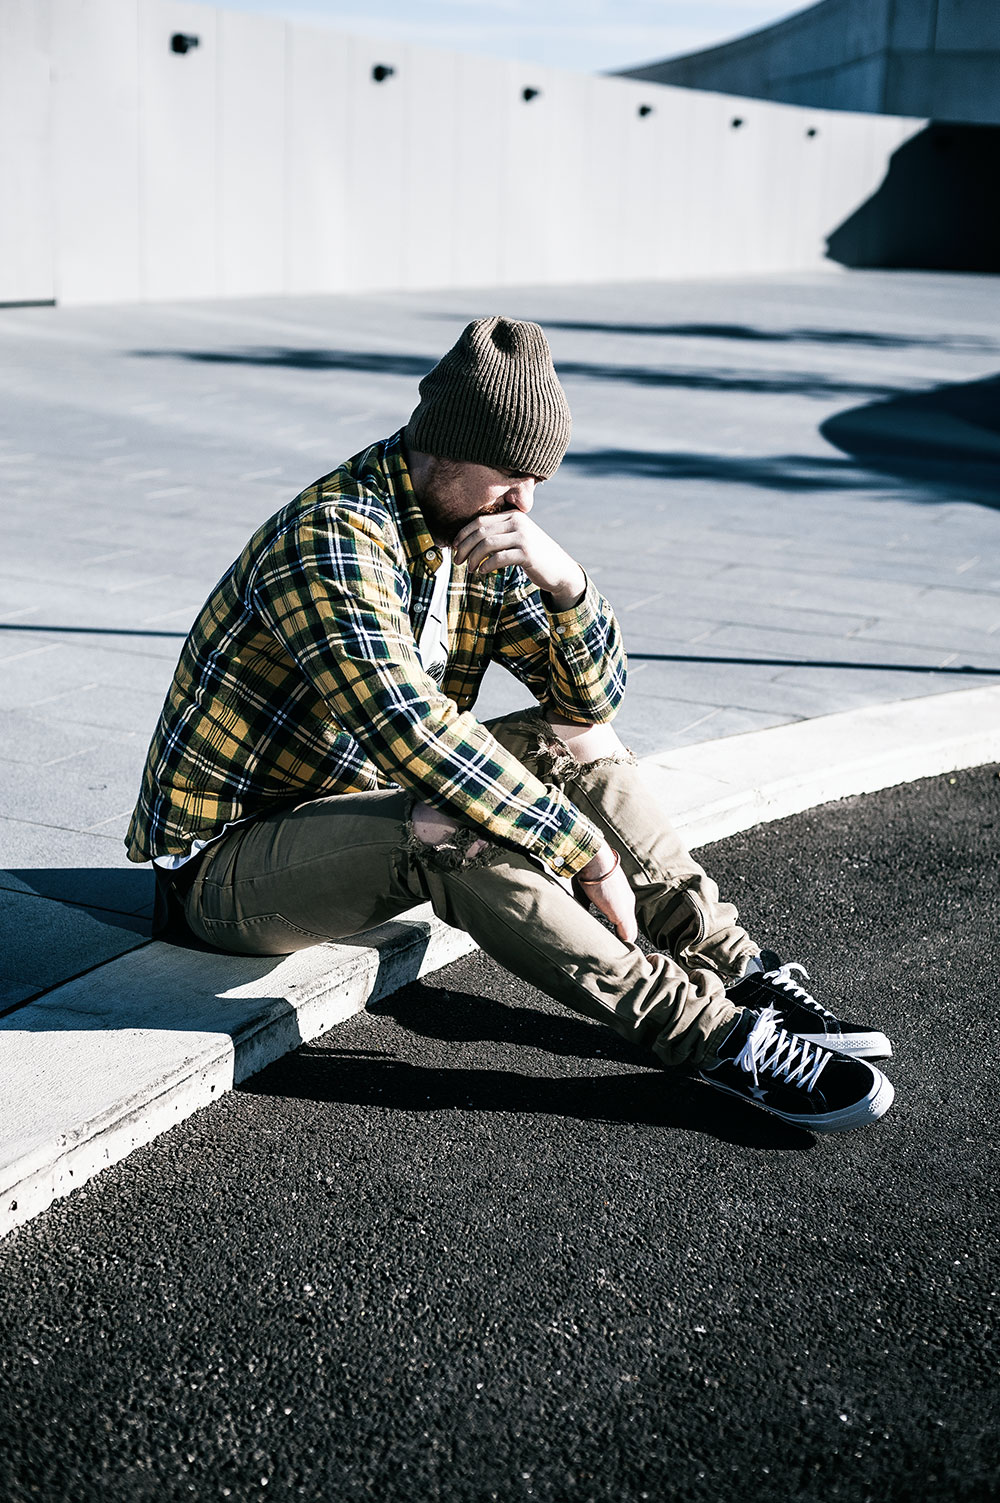 Converse One Star Premium Suede 90s Reissue Black Sneakers / MNML M1 Taupe Denim / Fallen Footwear Flannel Shirt / Nixon Regain Sage Beanie by Tom Cunningham